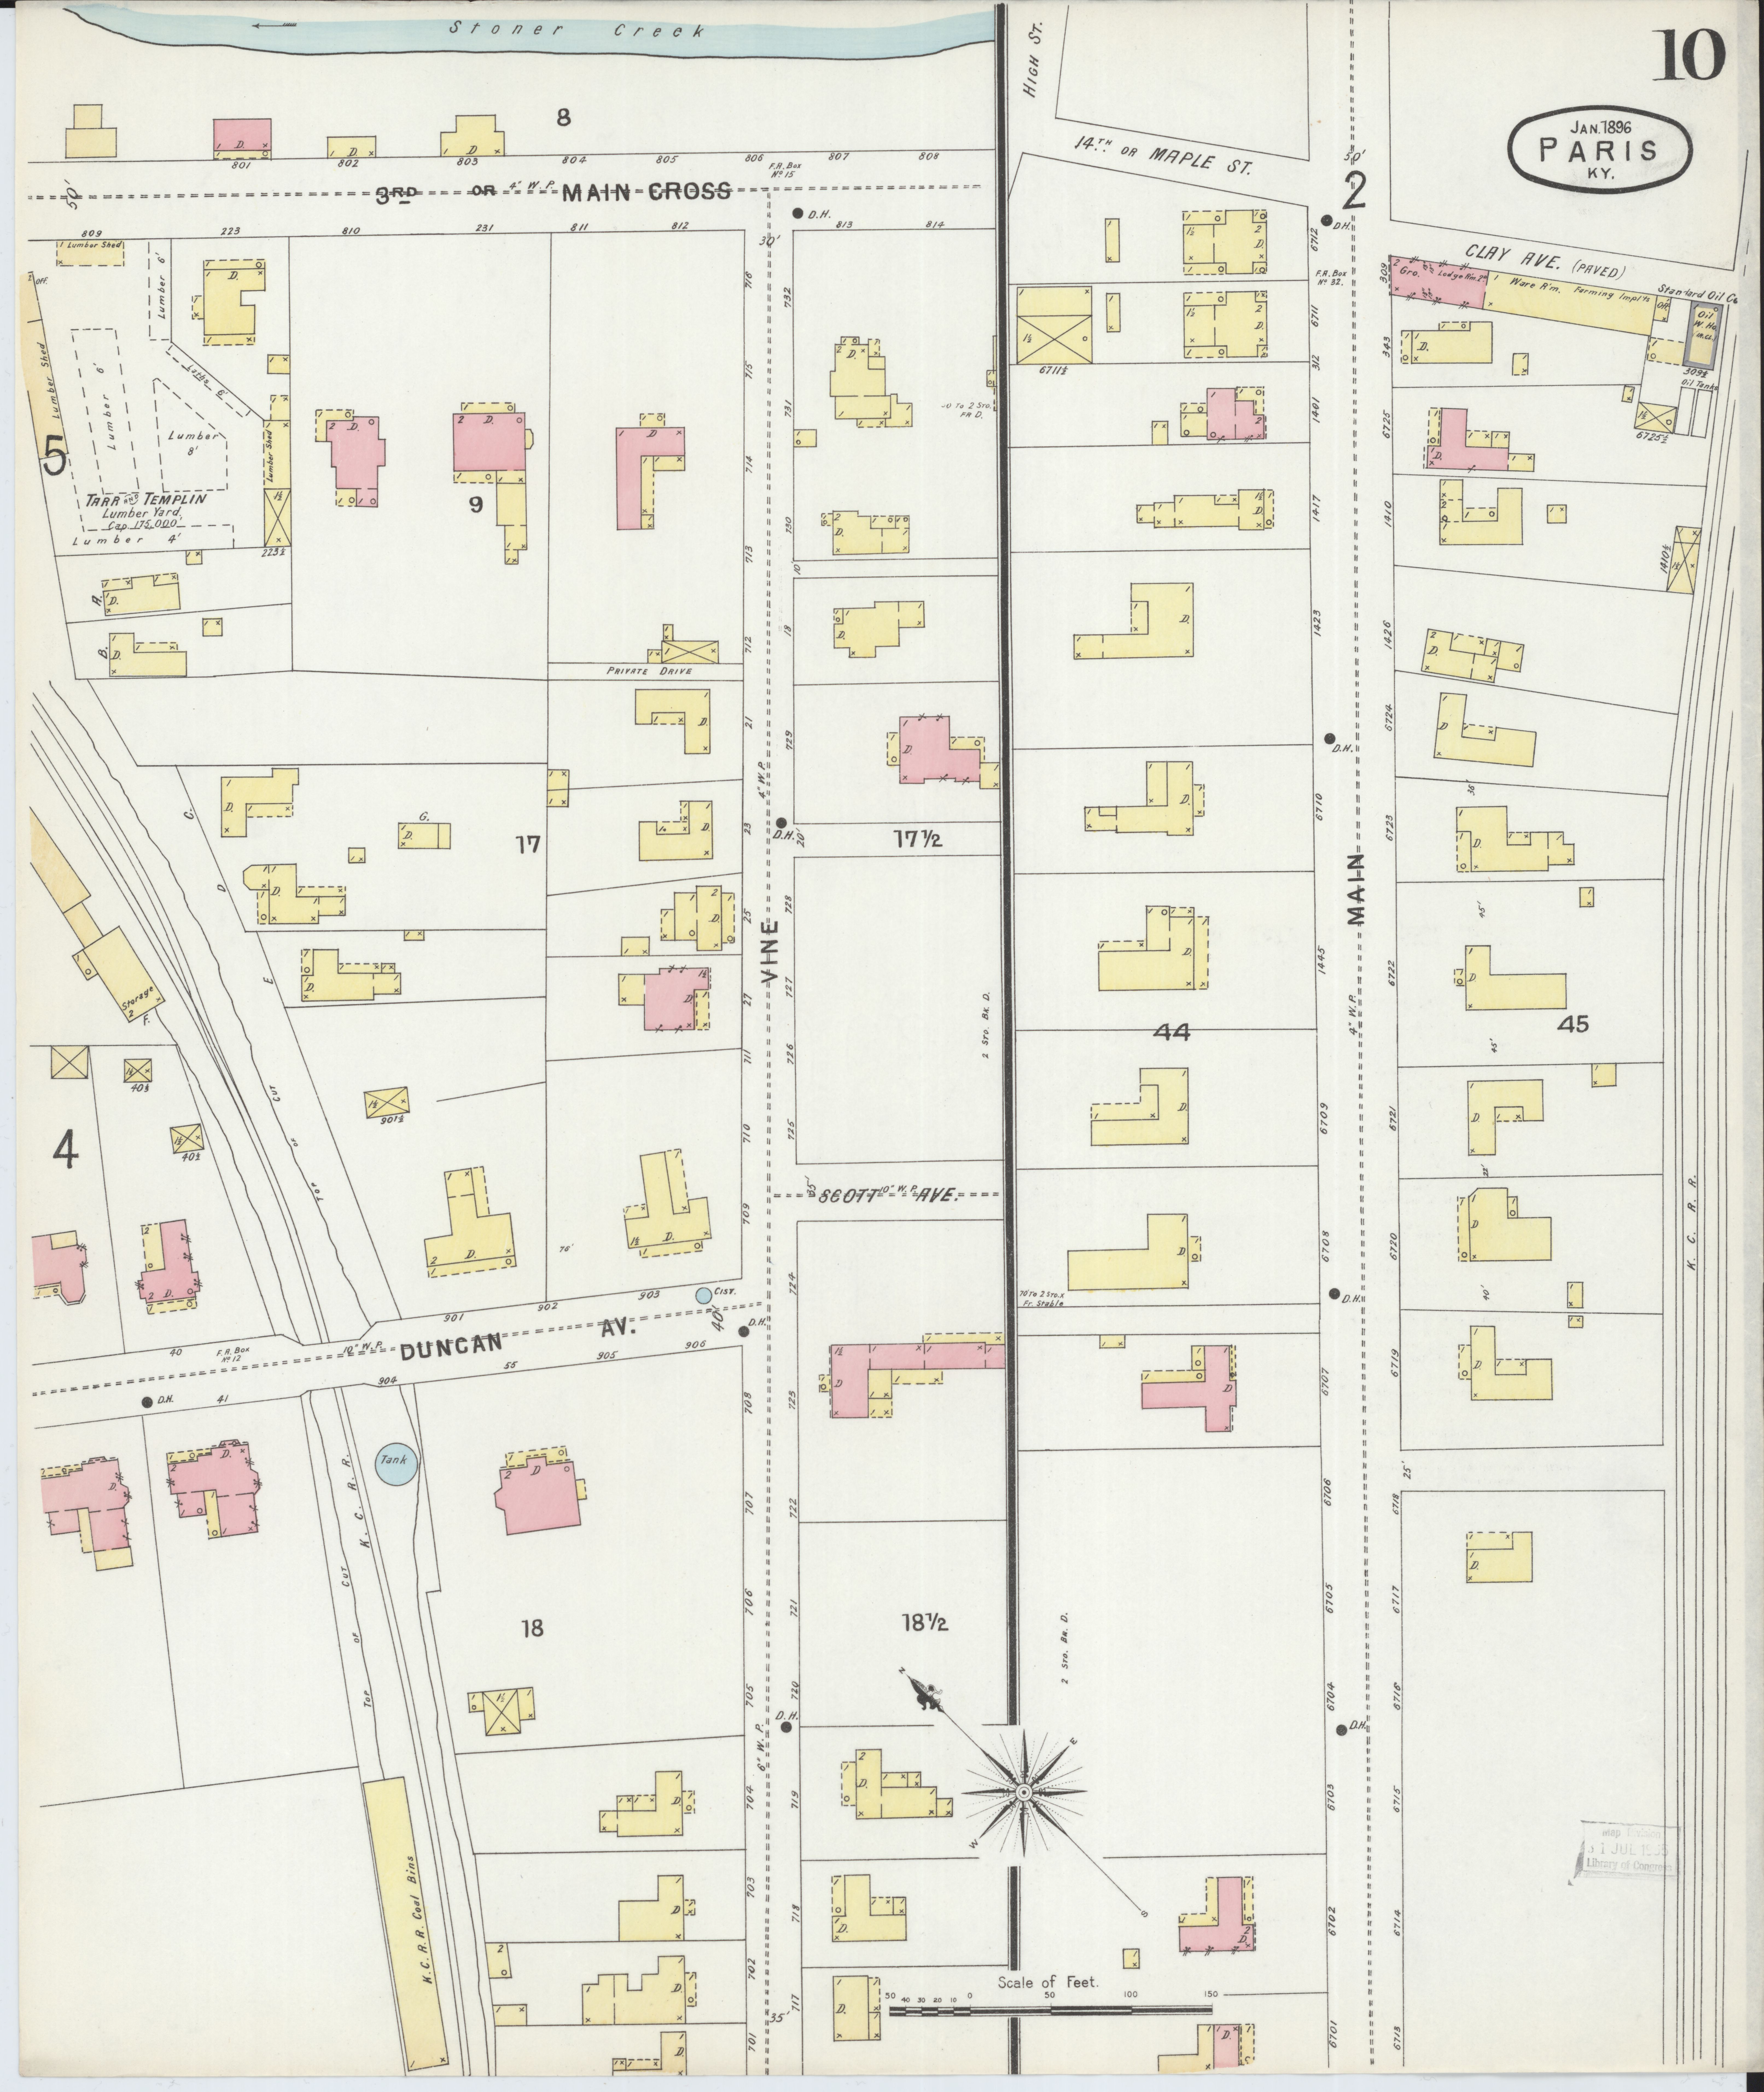 Picture of: File Sanborn Fire Insurance Map From Paris Bourbon County Kentucky Loc Sanborn03227 003 10 Jpg Wikimedia Commons